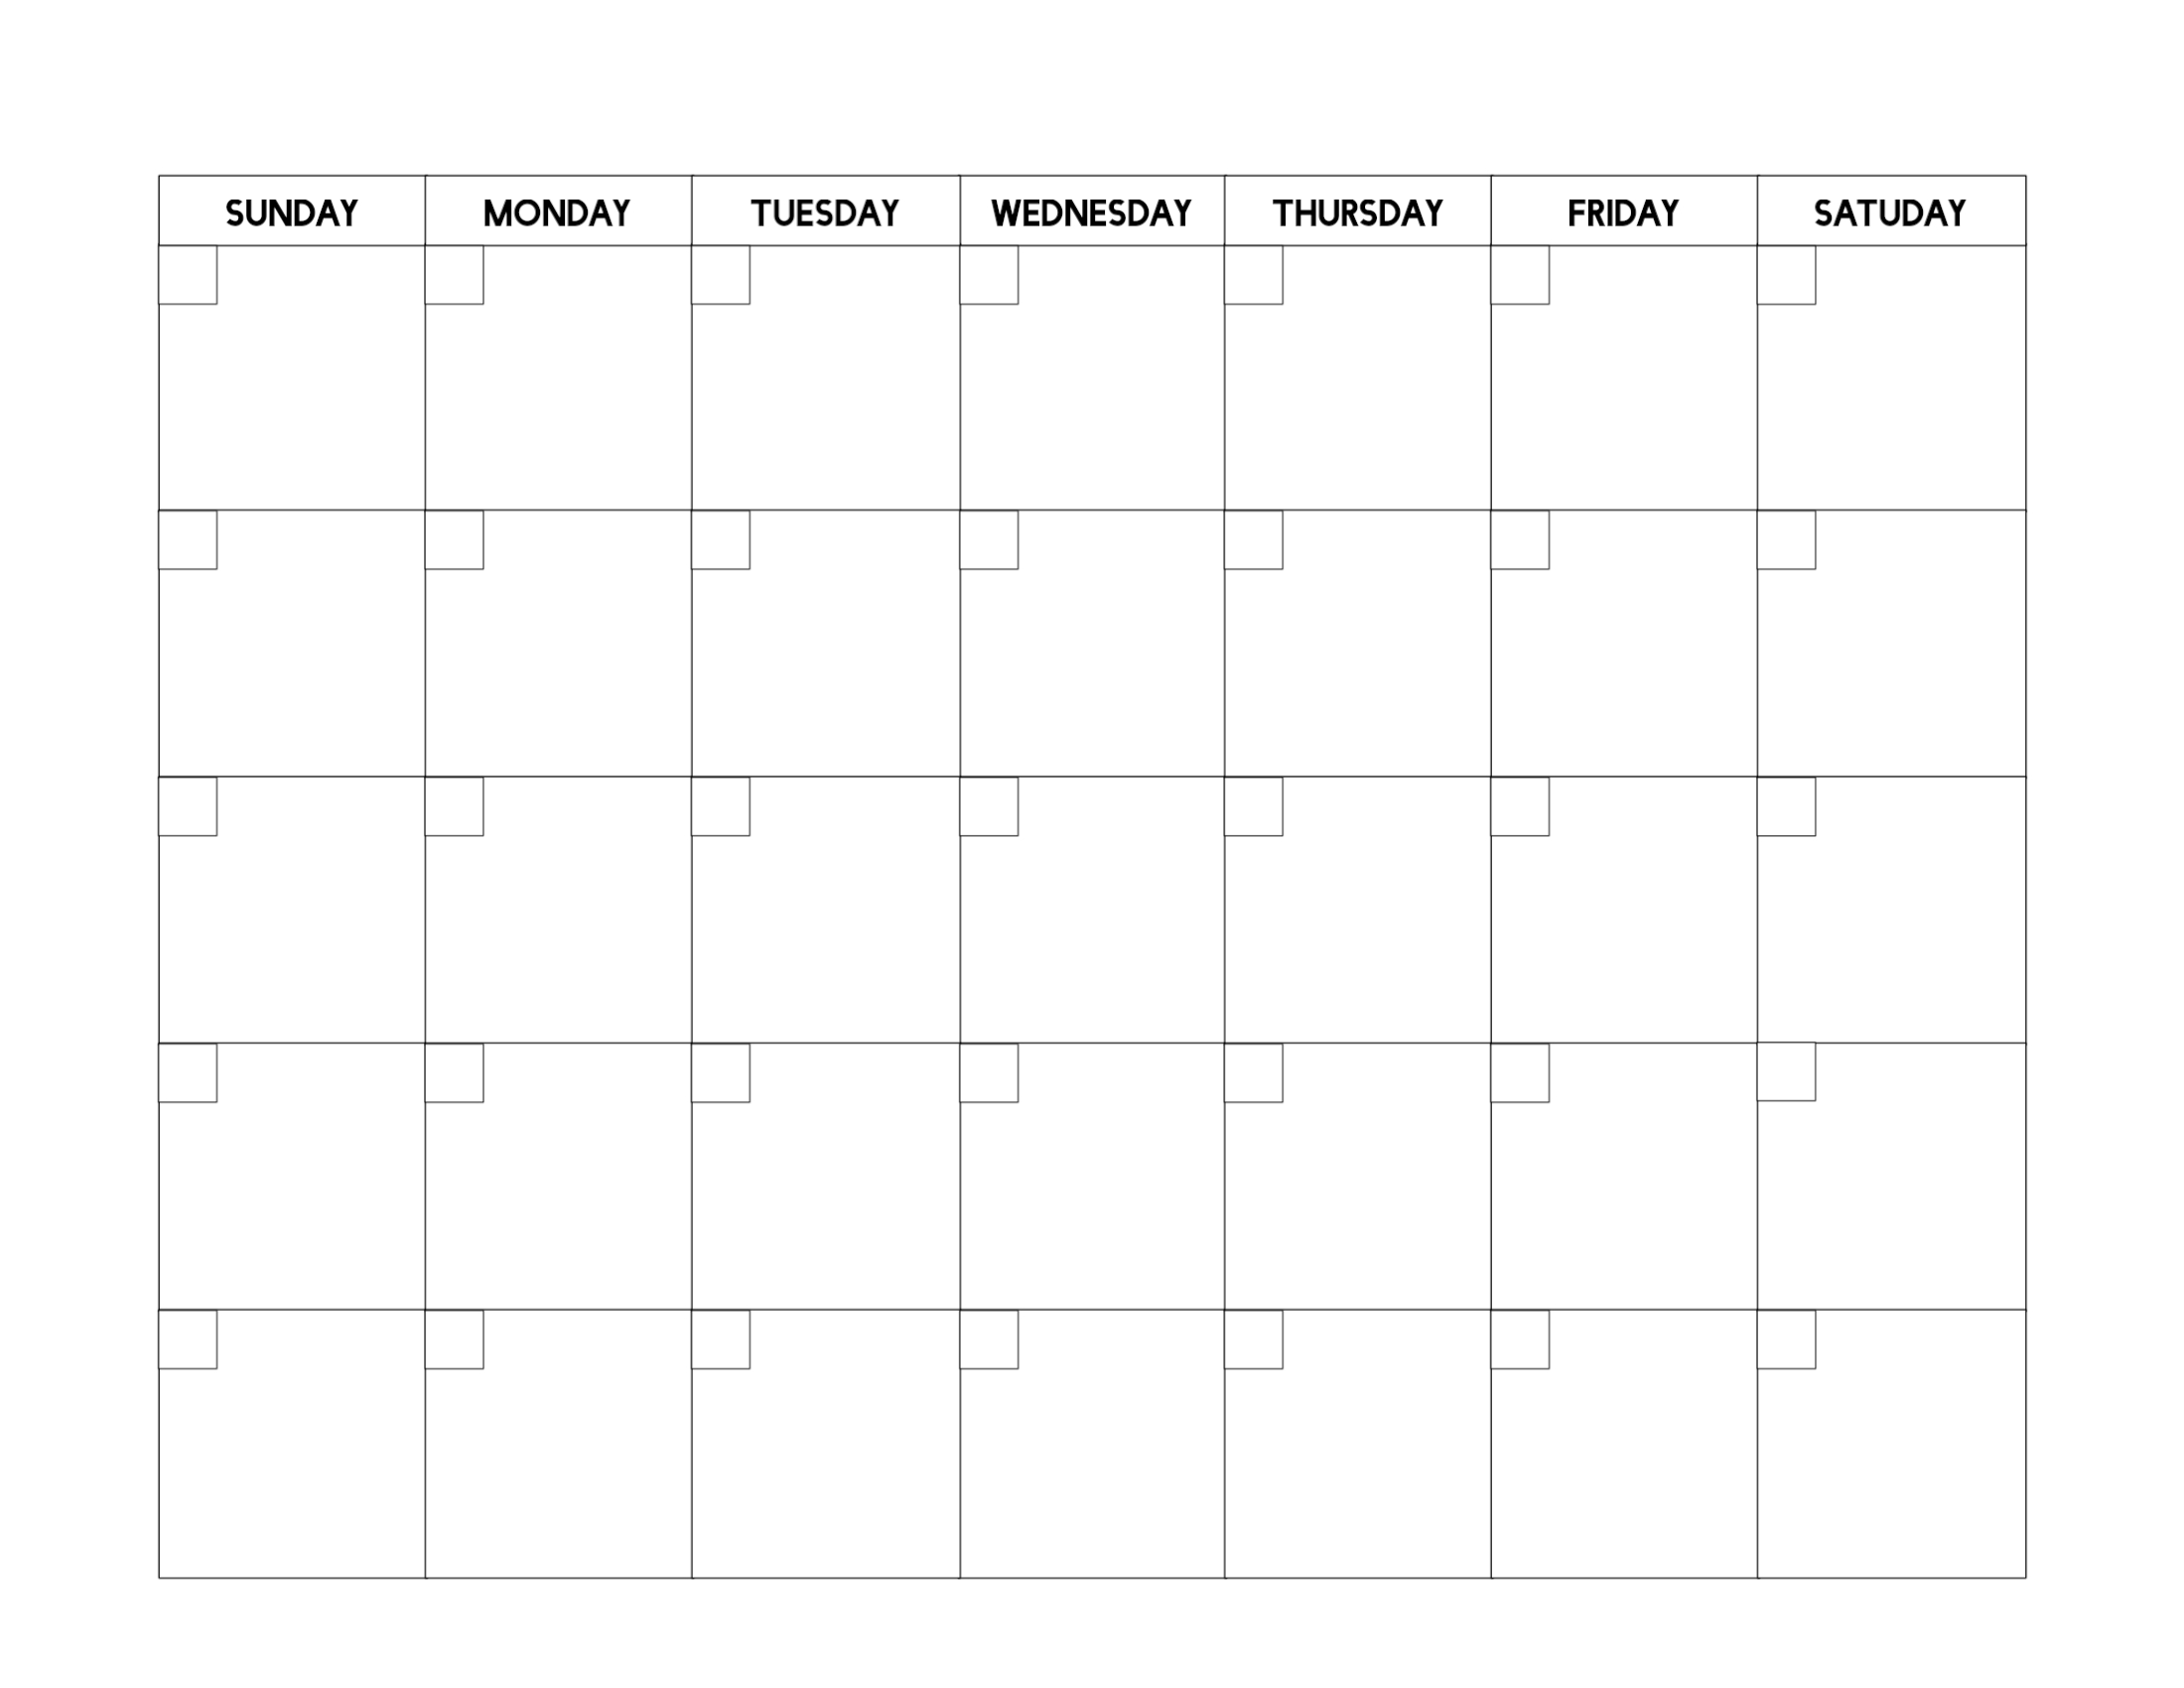 Free Printable Blank Calendar Template - Paper Trail Design_Free Calendar Blanks To Print